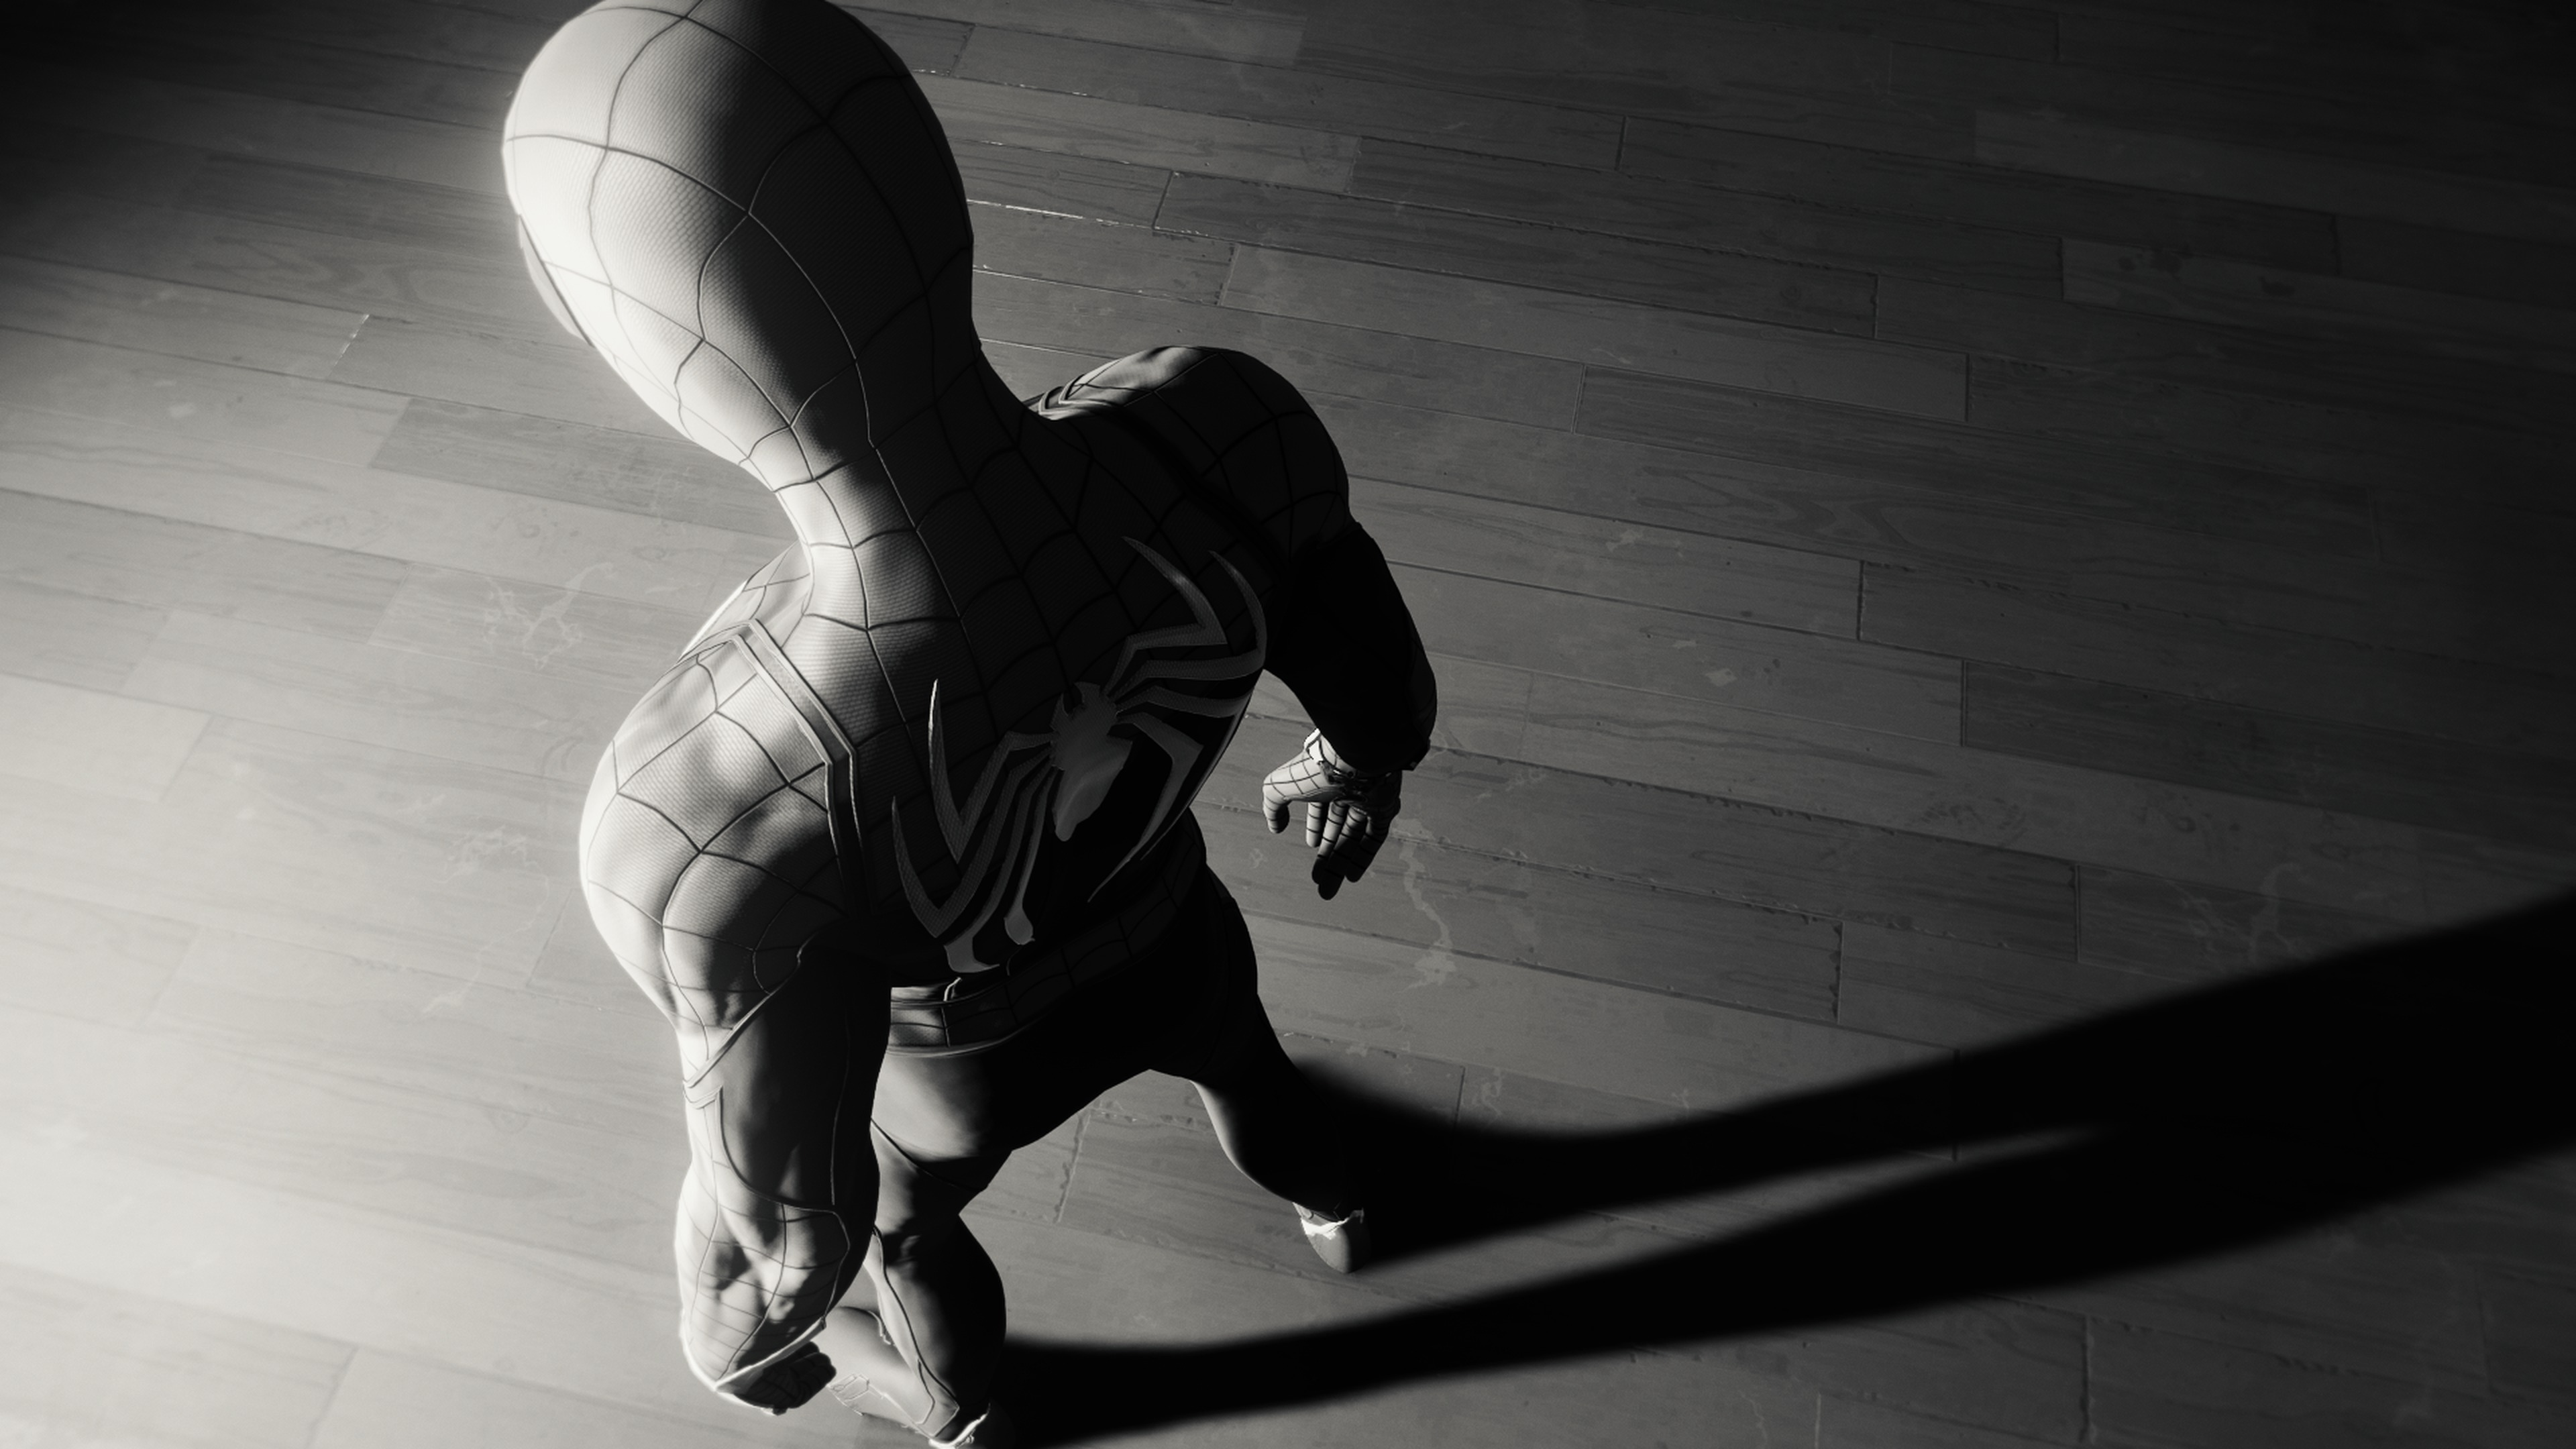 Wallpaper 4k Spiderman Game Spider Logo 4k Monochrome 2018 Games